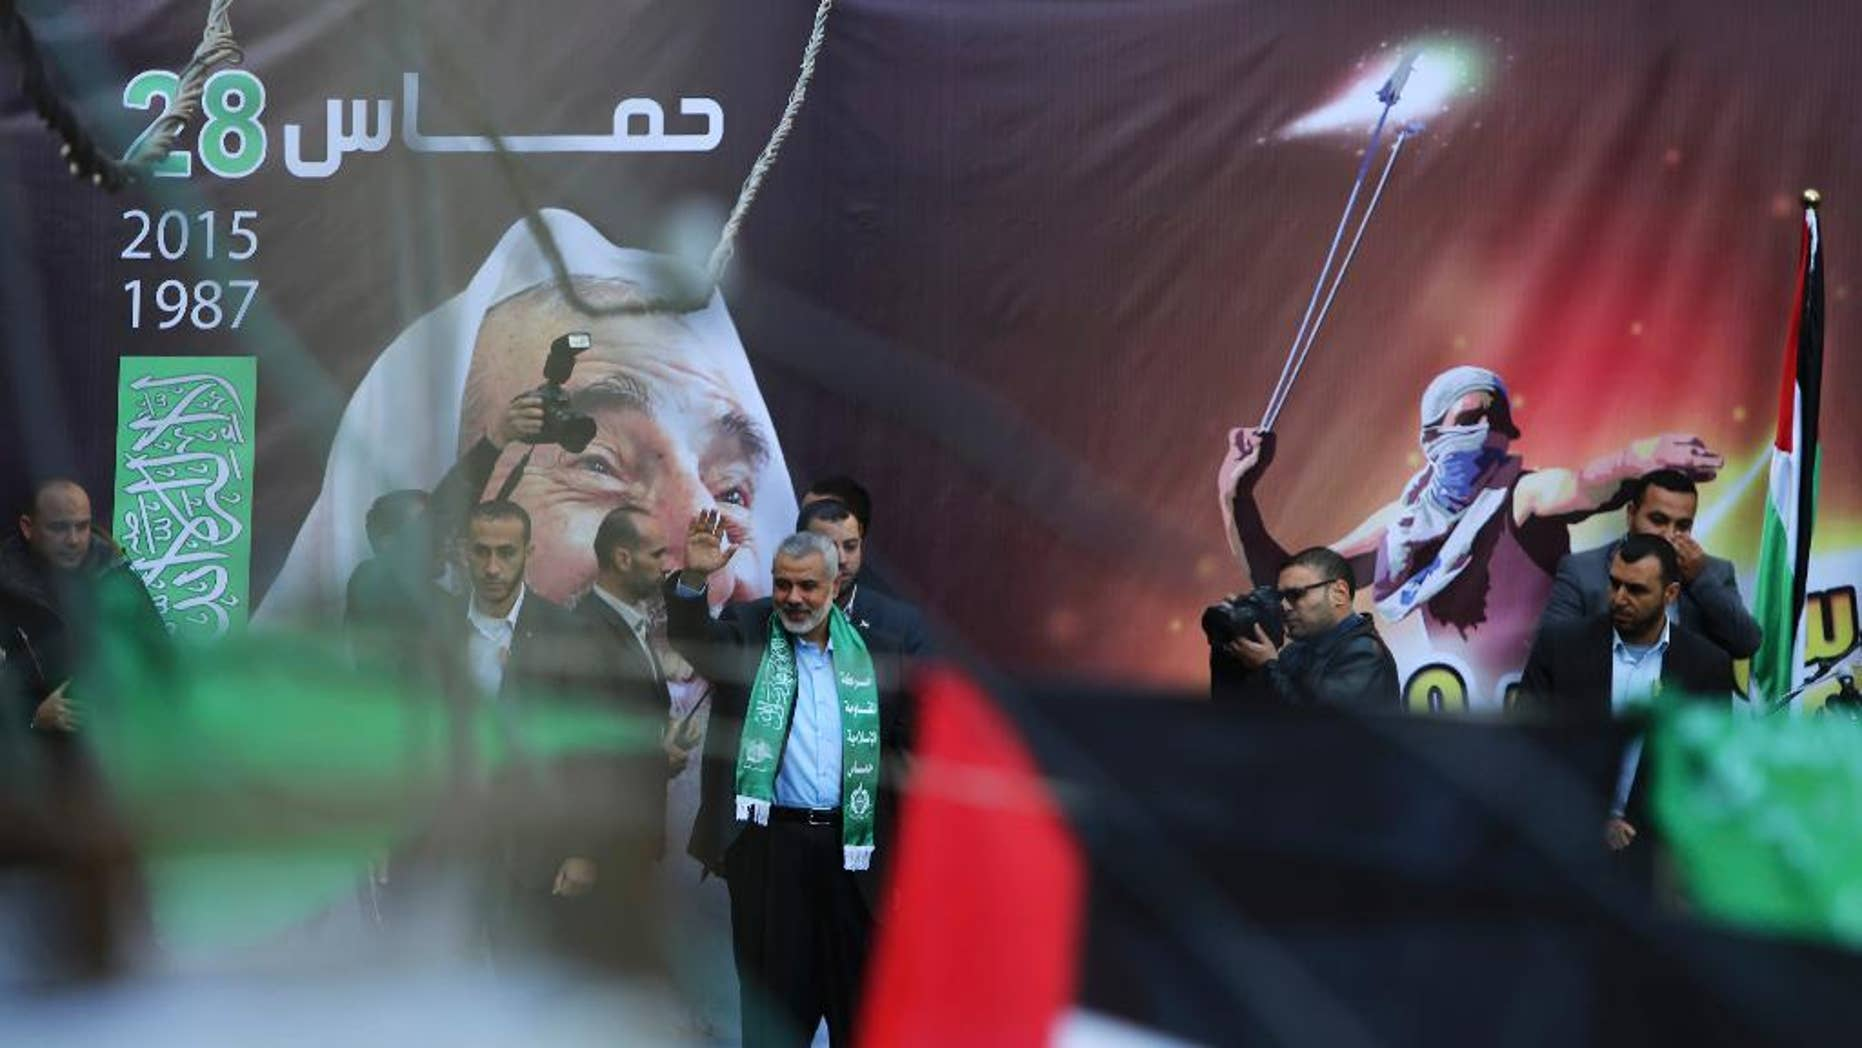 File - In this Monday, Dec. 14, 2015 file photo, Hamas leader Ismail Haniyeh, waves to supporters during a rally to commemorate the 28th anniversary of the Hamas in Gaza City. Hamas has drafted a new political program that it hopes will improve ties with neighboring Egypt and the West and present a more moderate image that will help it get off Western terrorism lists. The internationally isolated group, which has ruled the Gaza Strip for the past decade, characterizes itself in the manifesto as a Palestinian resistance movement against Israeli occupation, dropping references to holy war against Jews. It also raises the possibility of a Palestinian state in the West Bank, Gaza Strip and east Jerusalem, lands Israel captured in 1967. (AP Photo/Adel Hana, File)